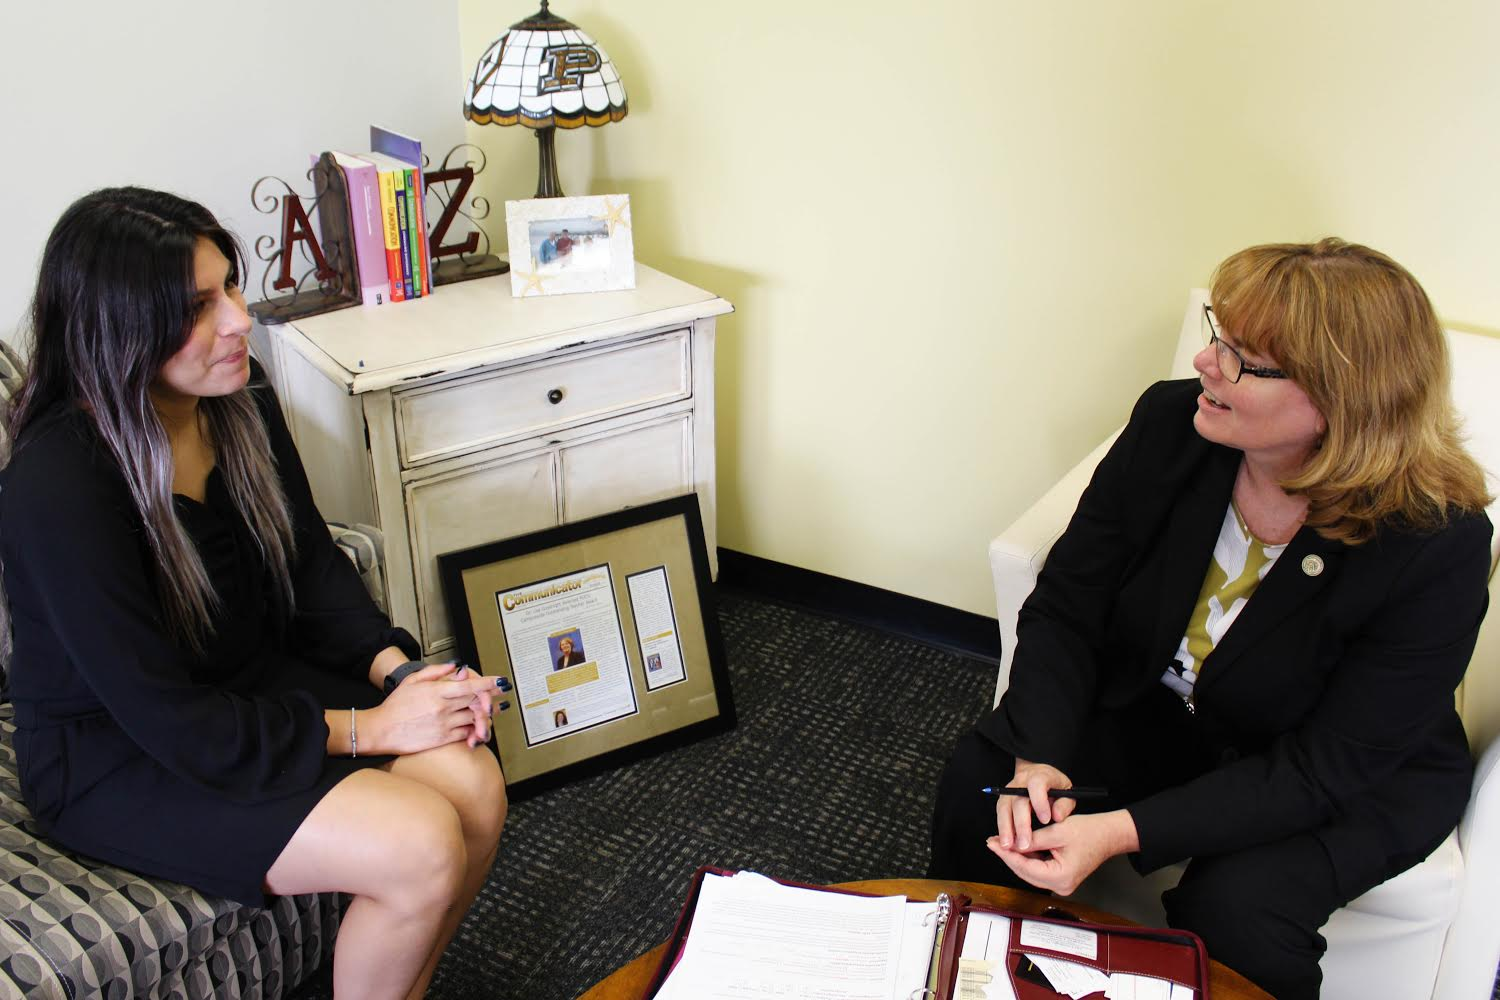 Lisa Goodnight (right), interim vice chancellor for institutional advancement, discusses how to help students with Alexa Inguez (left), senior psychology major.